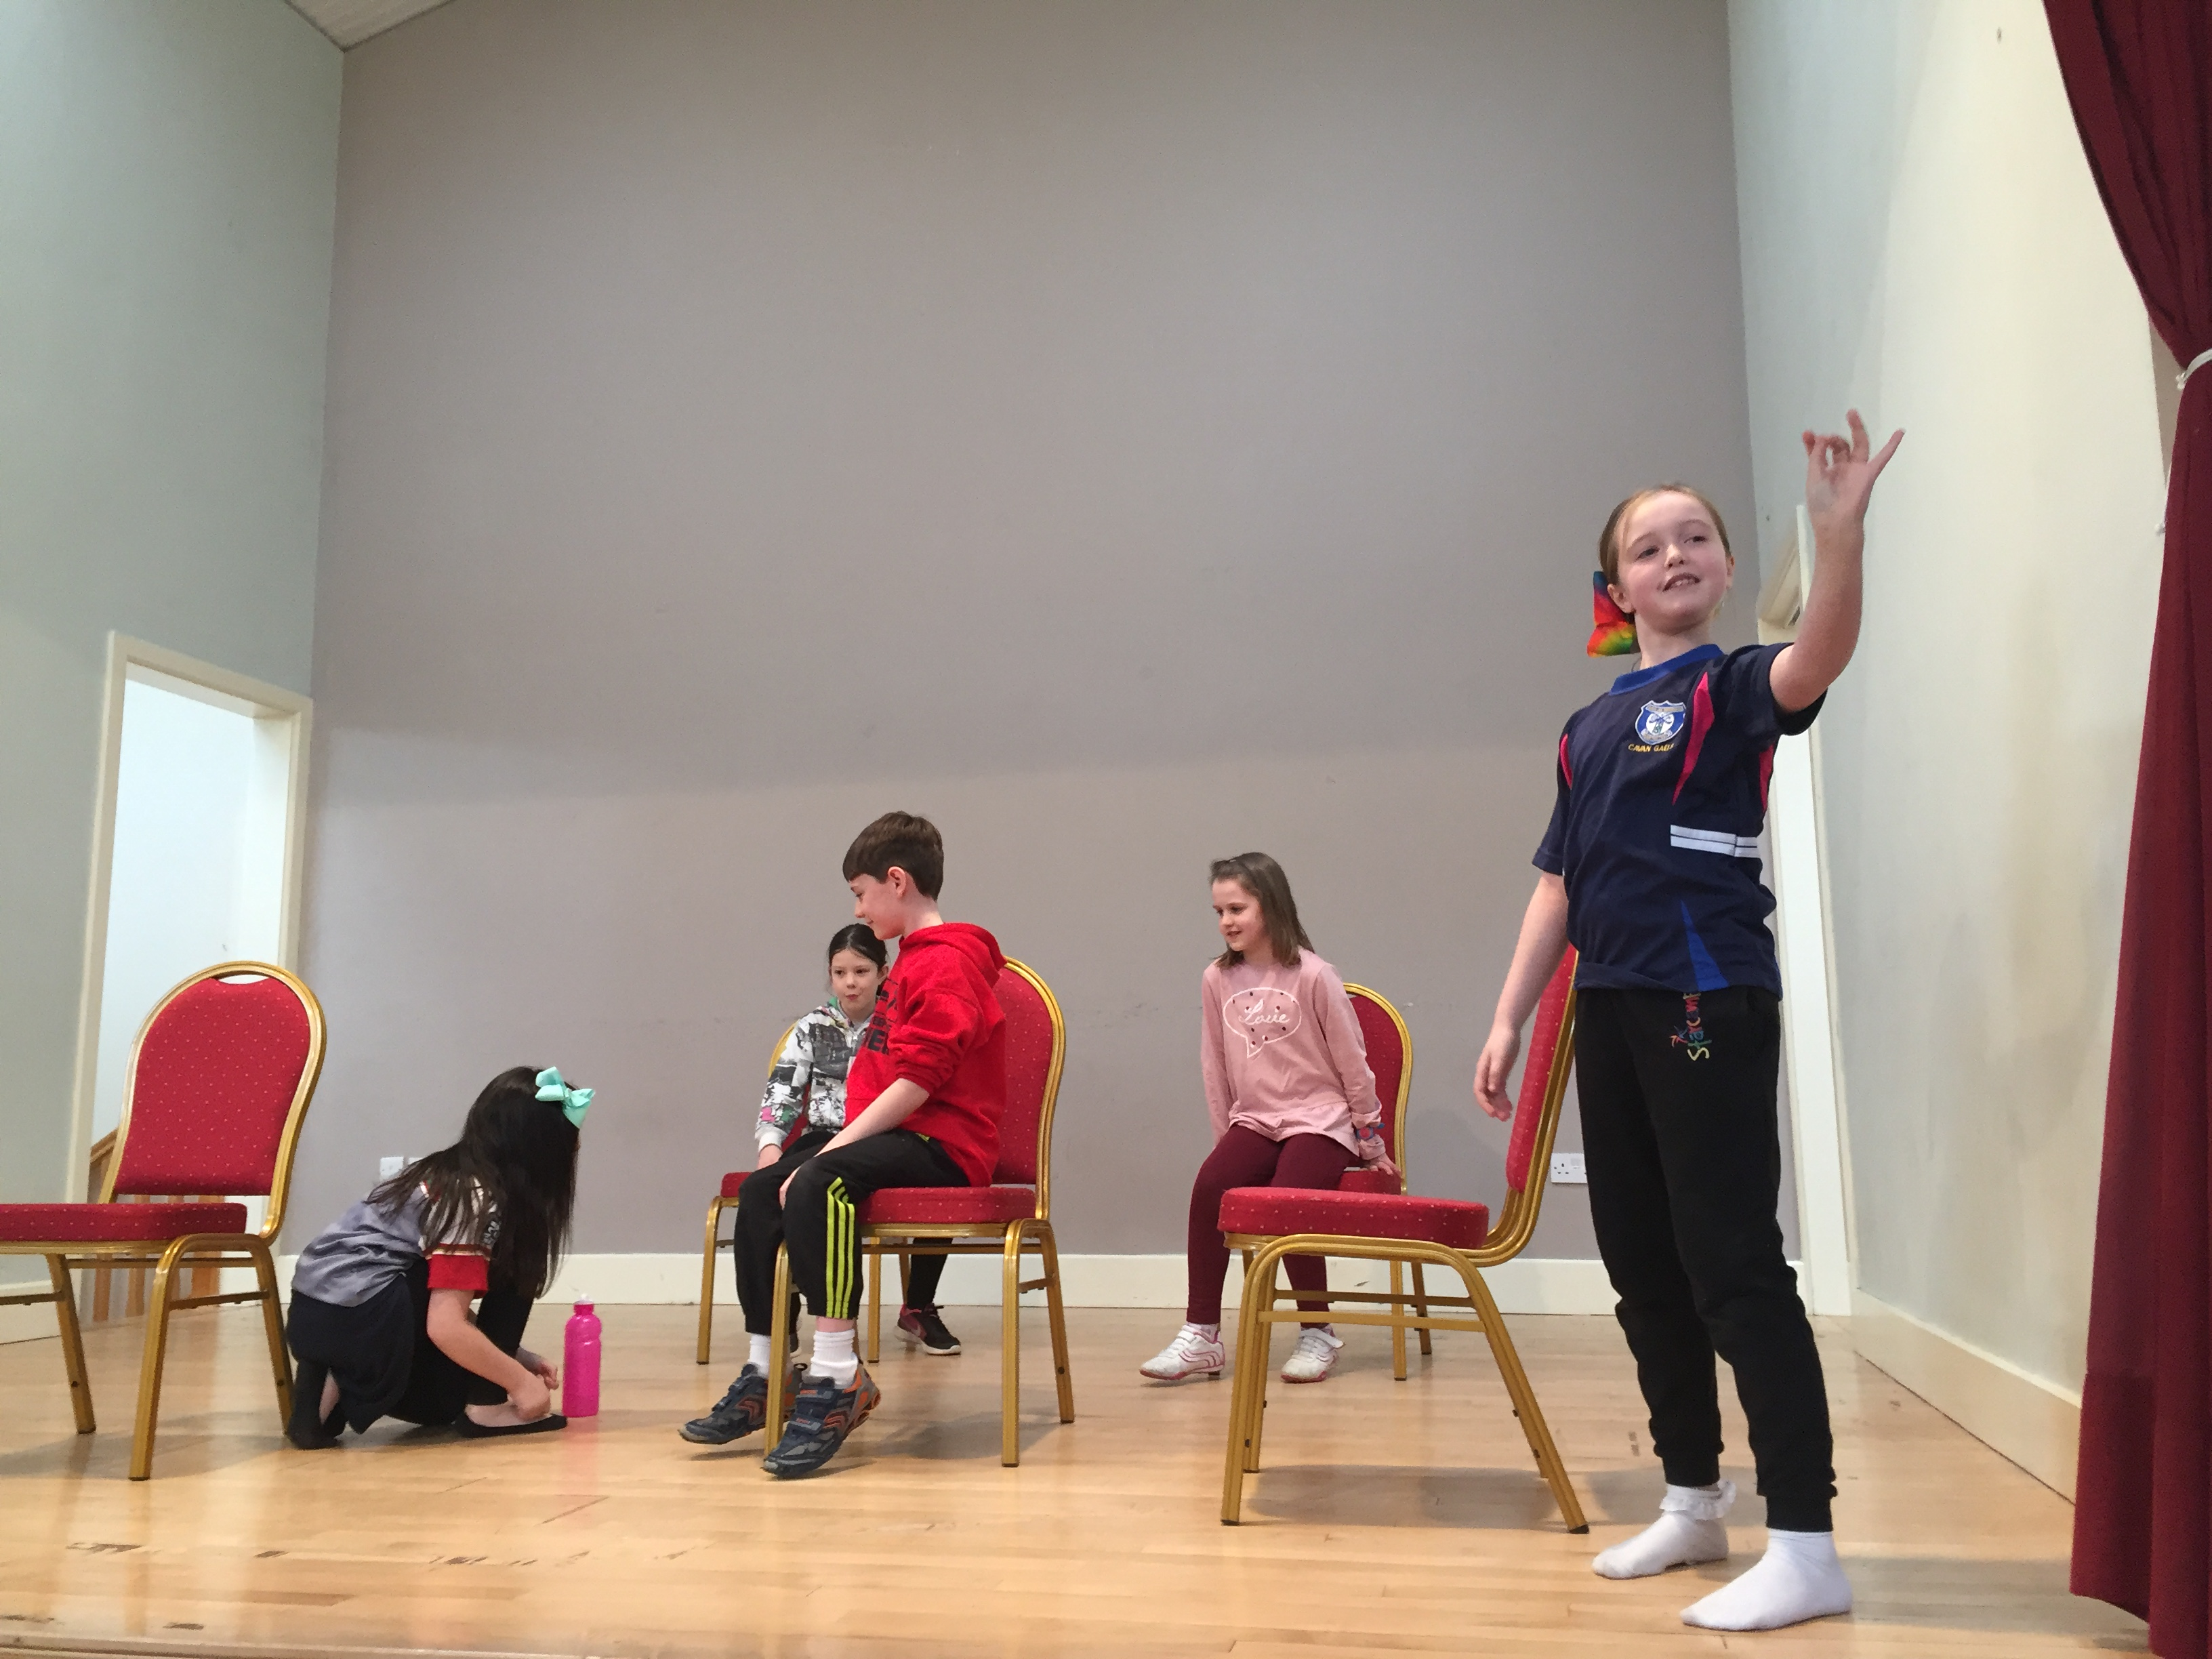 Kids | Gonzo Youth Theatre | Cavan